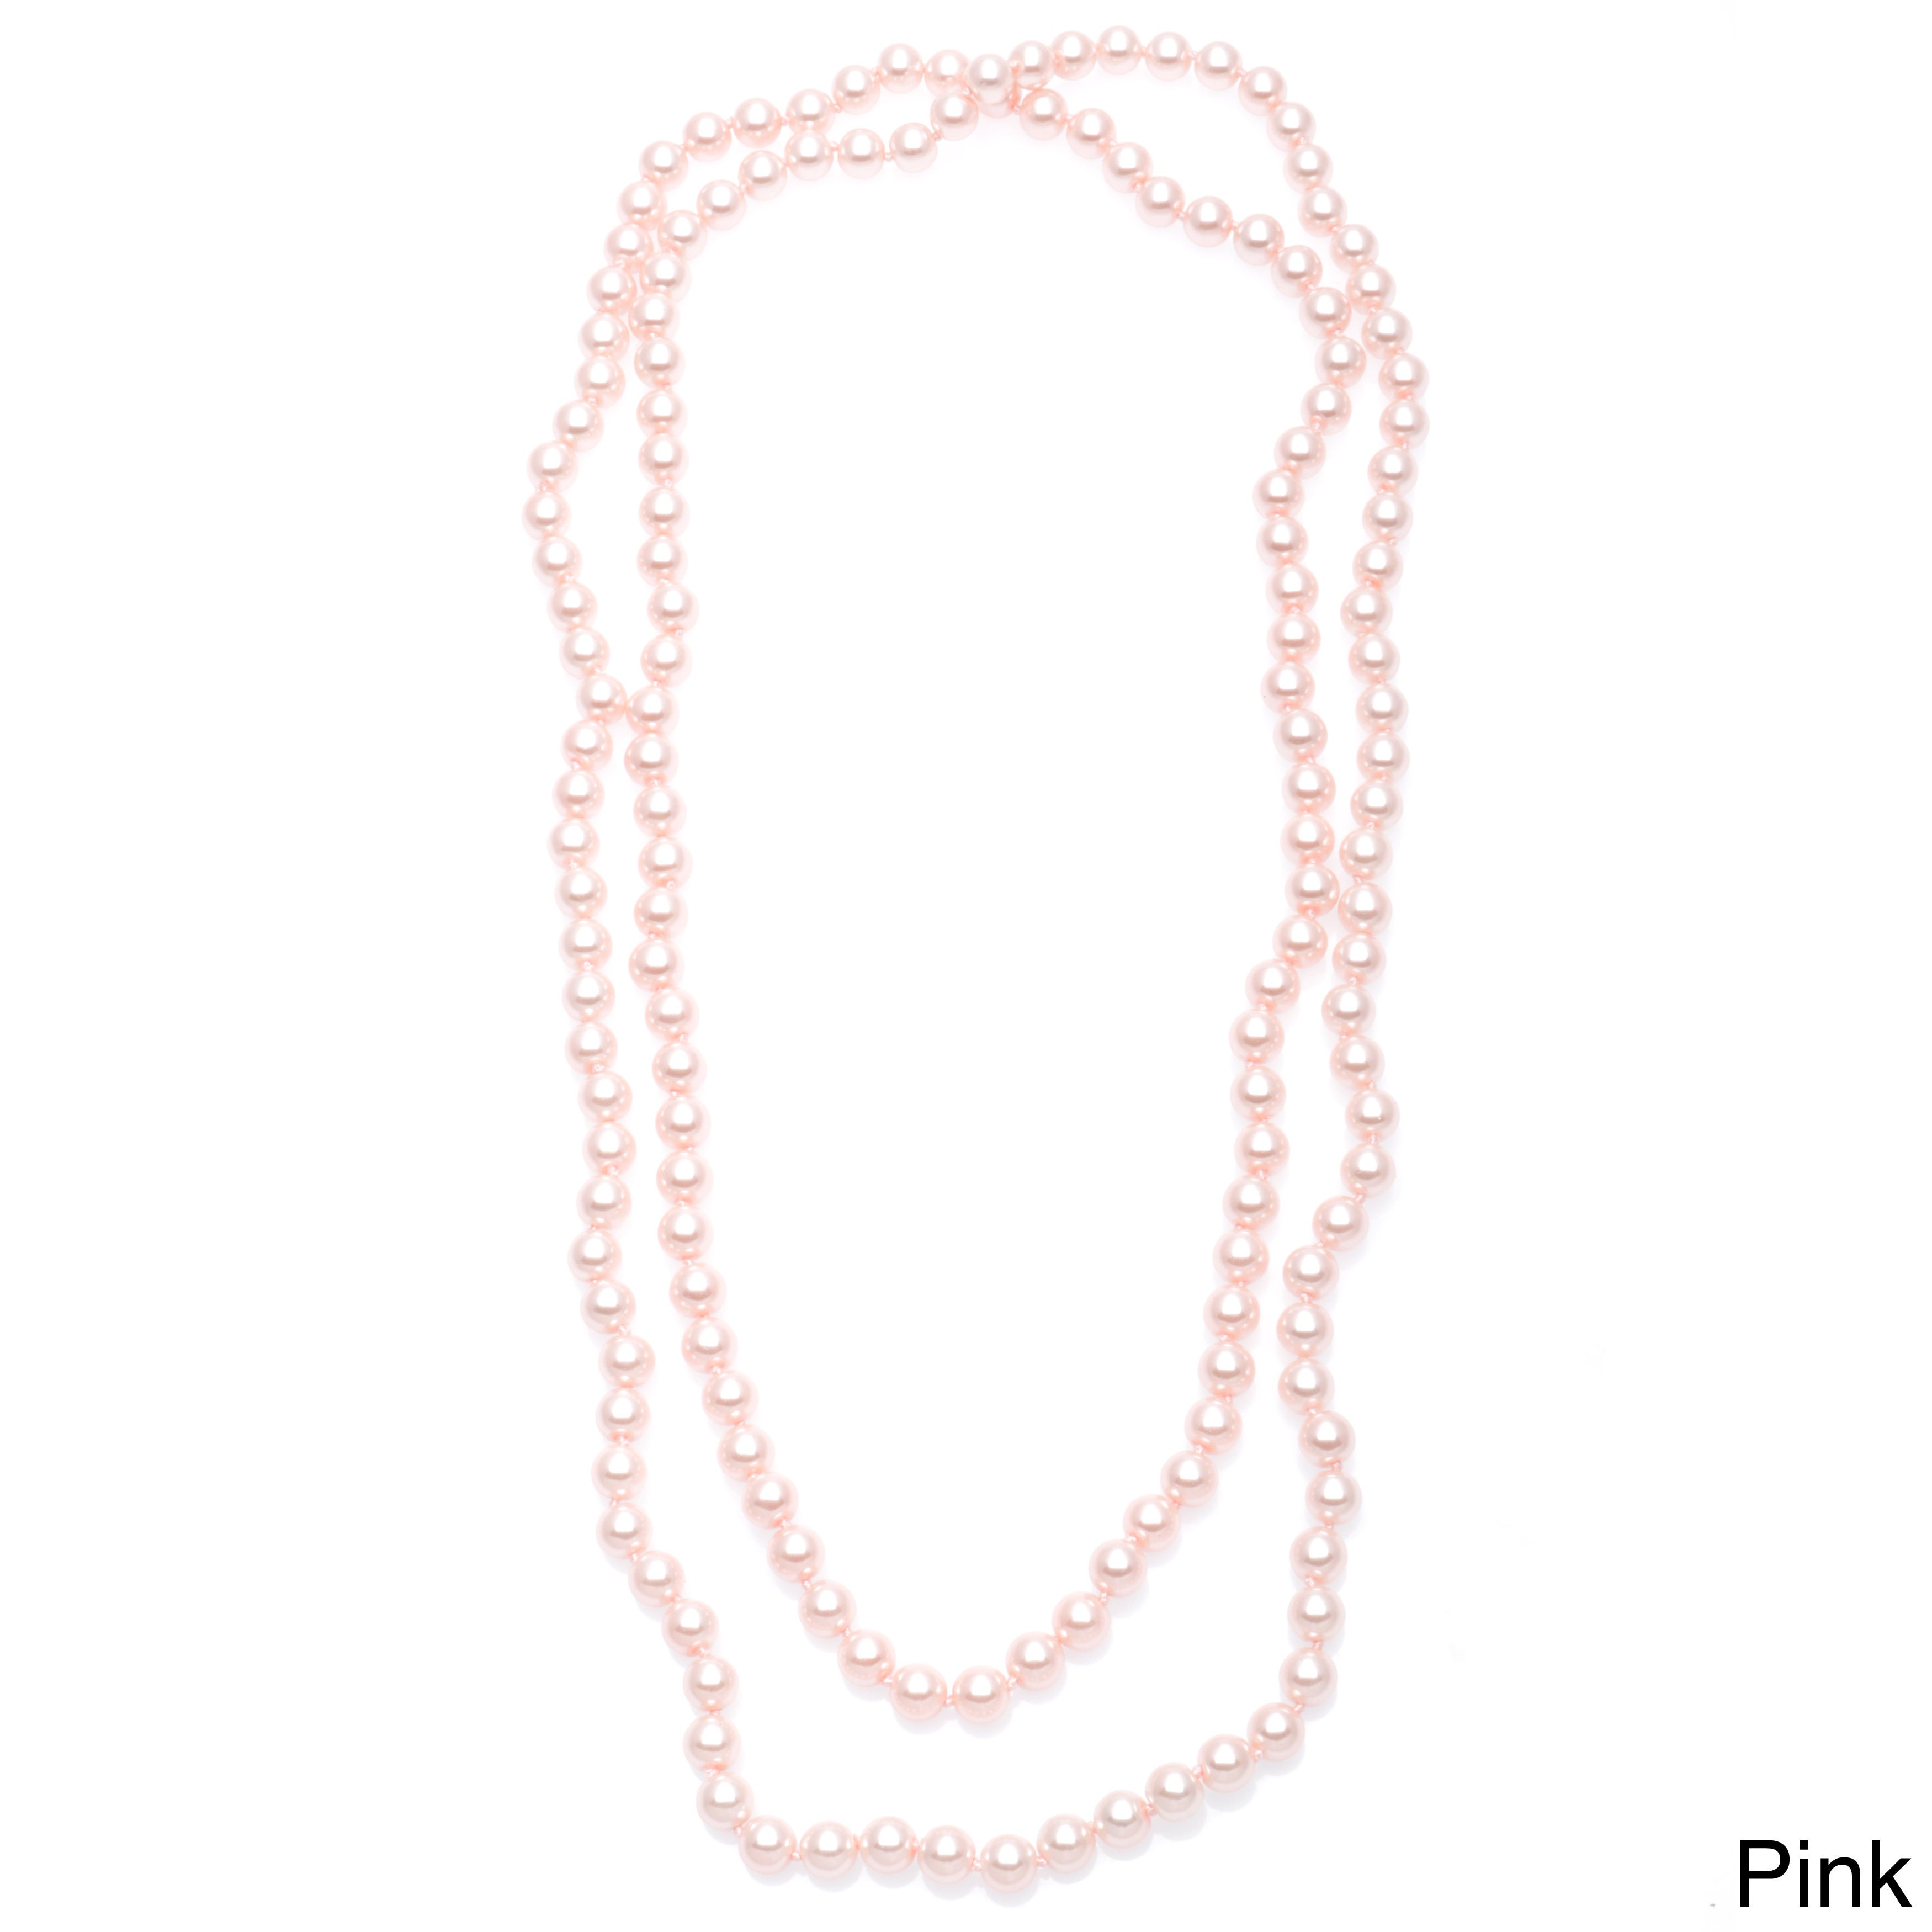 collections library of pink sandi pointe necklace pearl virtual